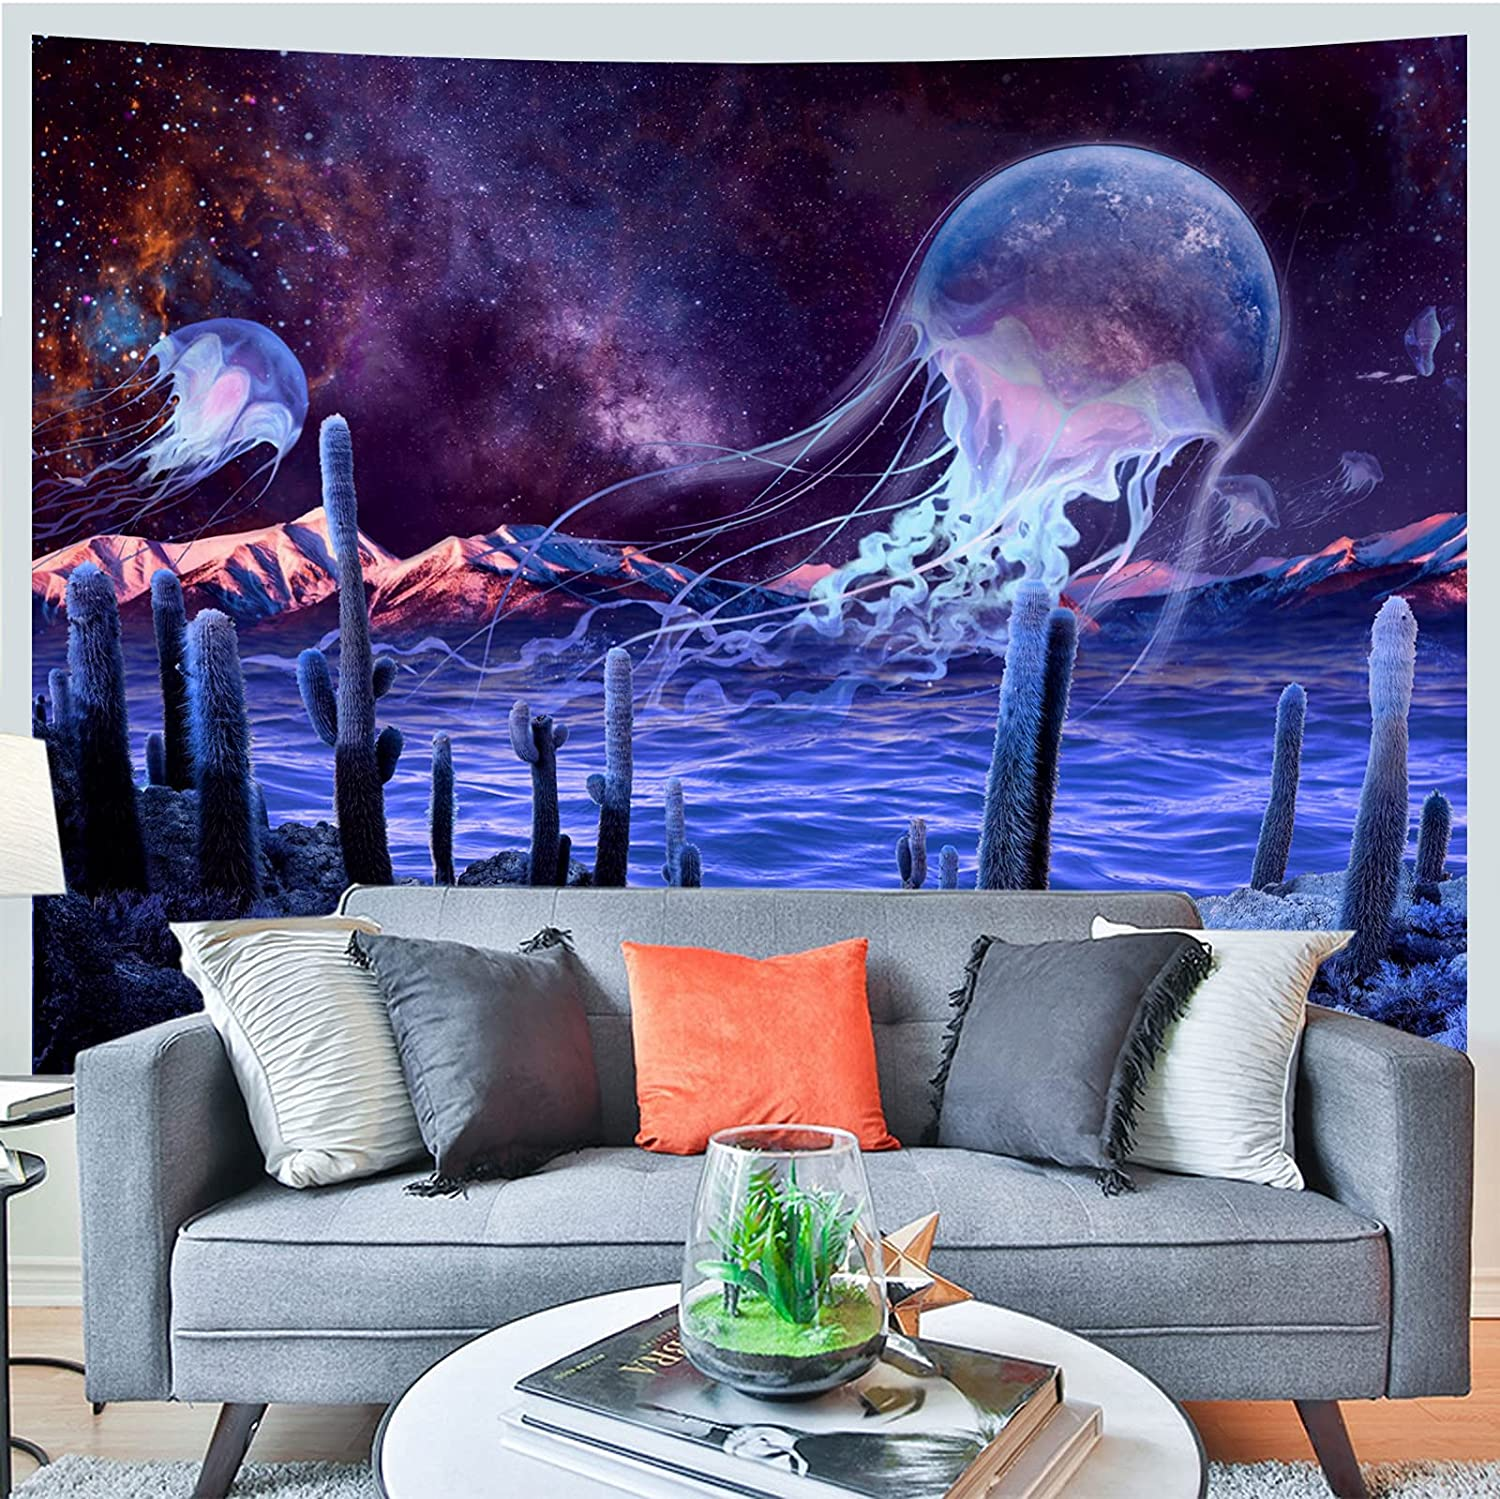 Trippy Tapestry Galaxy Starry SkyTapestry Psychedelic Jellyfish Wall Tapestry Hippie Mystic Outer Space Cactus Tapestry Wall Hanging for Bedroom Dorm Decor (M: 59.1